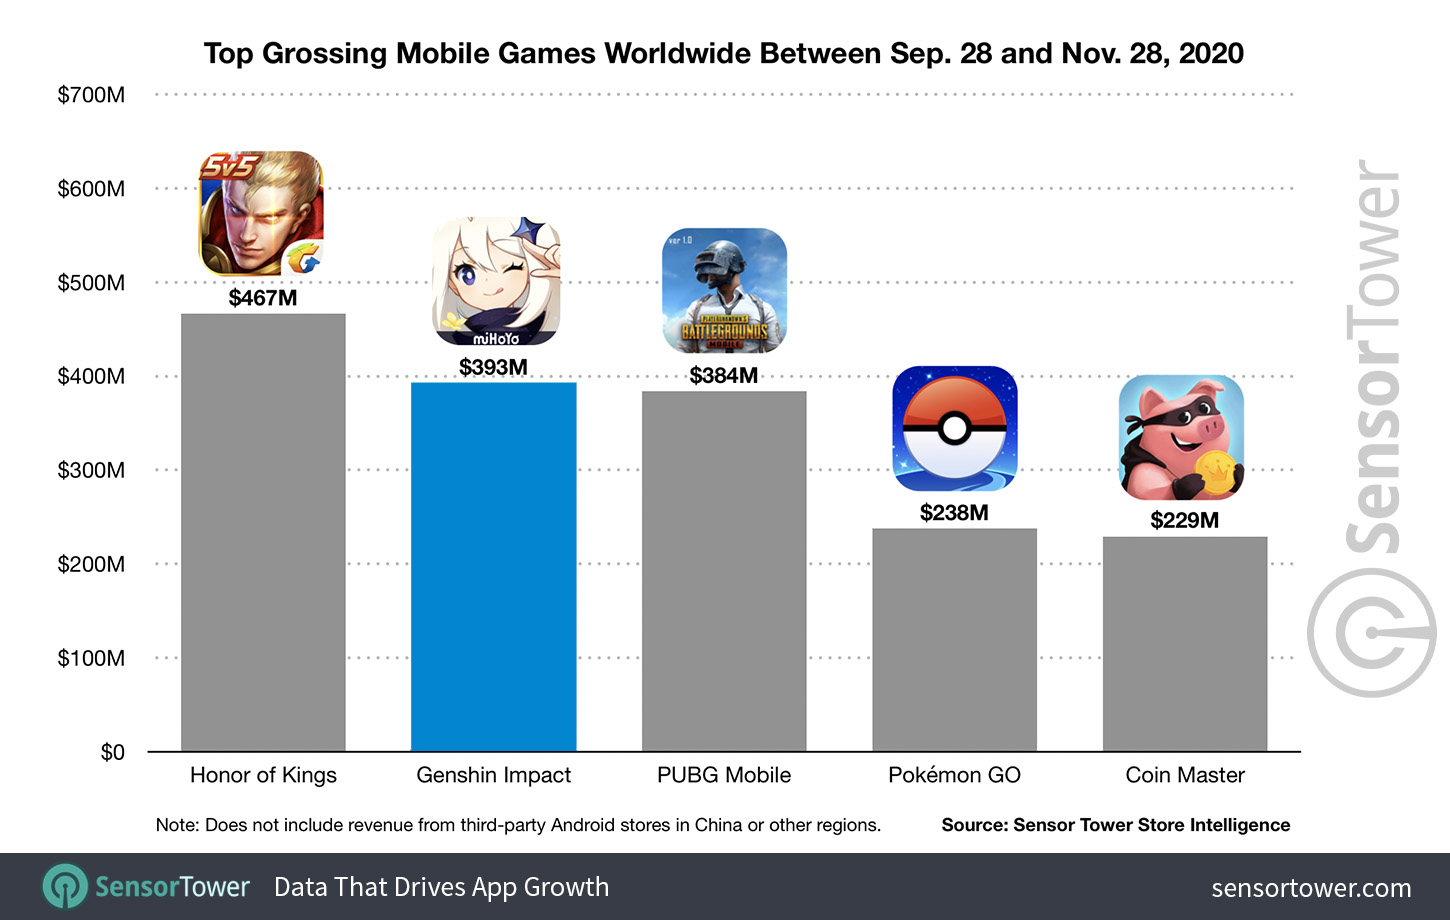 Top Grossing Mobile Games Worldwide Between September 28 and November 28 2020